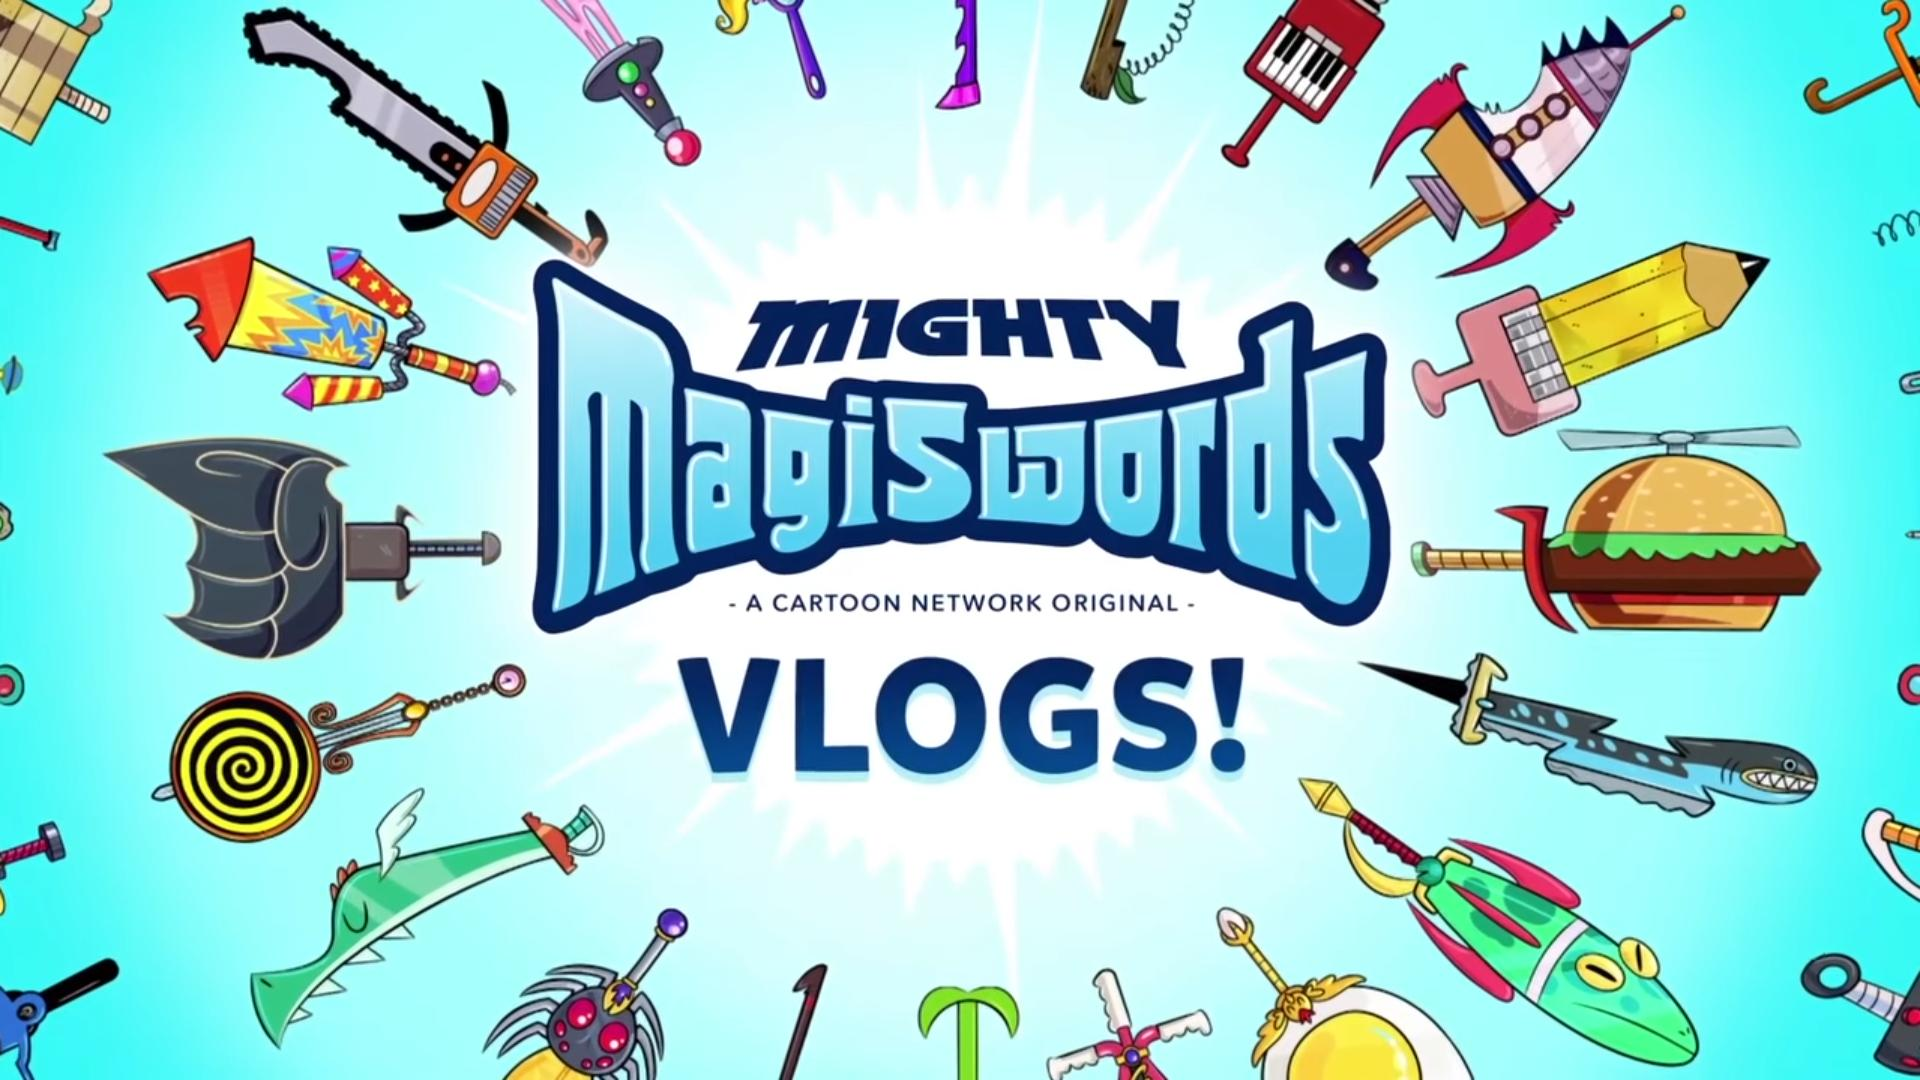 Mighty Magiswords Vlogs (TV Mini-Series 2016– ) - IMDb